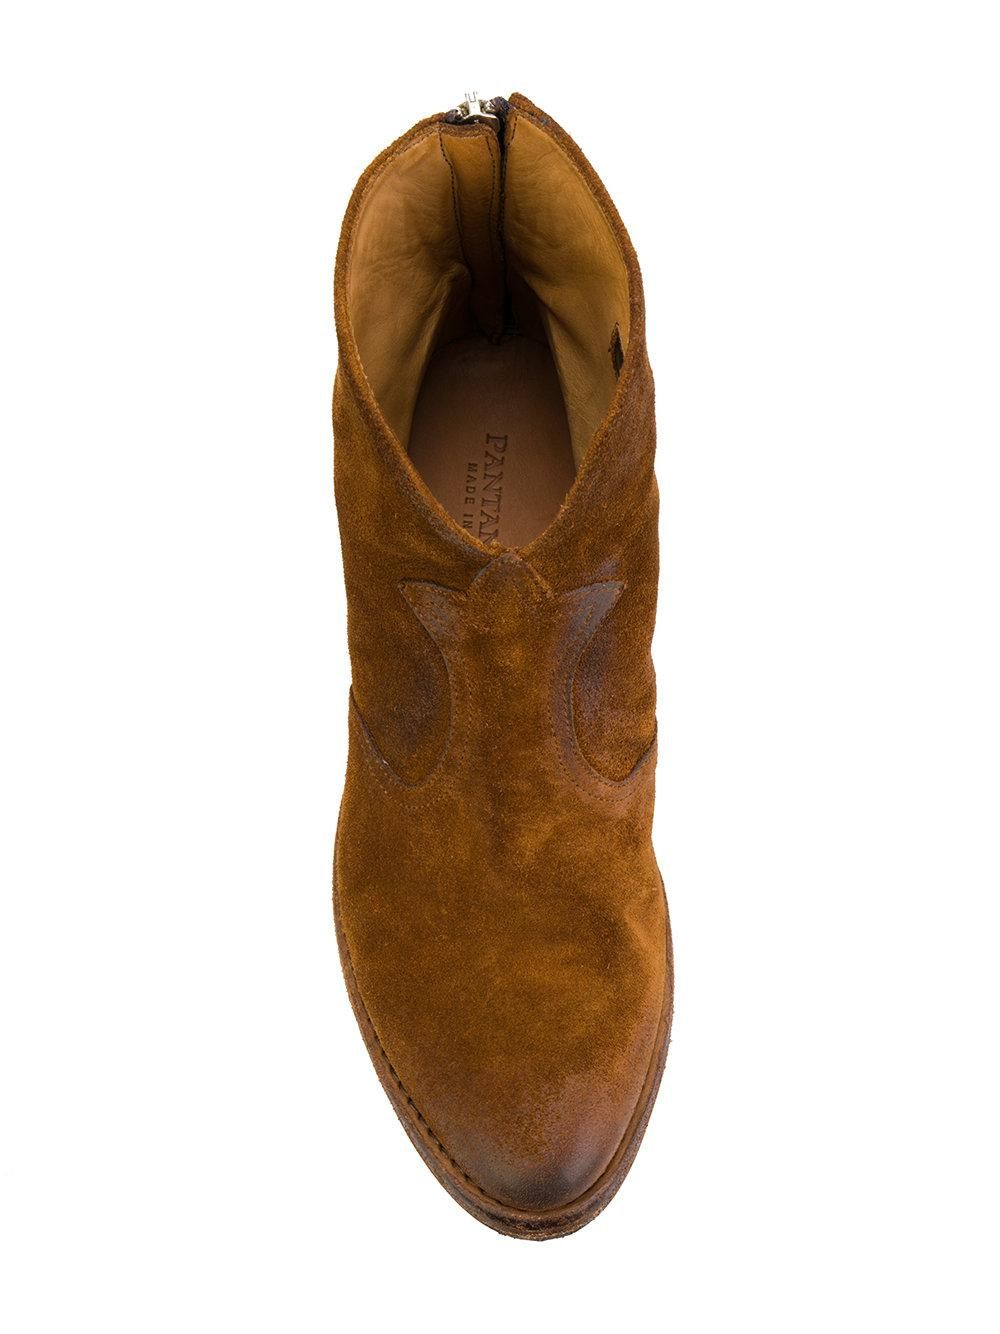 54bcaf31339dc Lyst - Pantanetti Low Heel Cowboy Boots in Brown